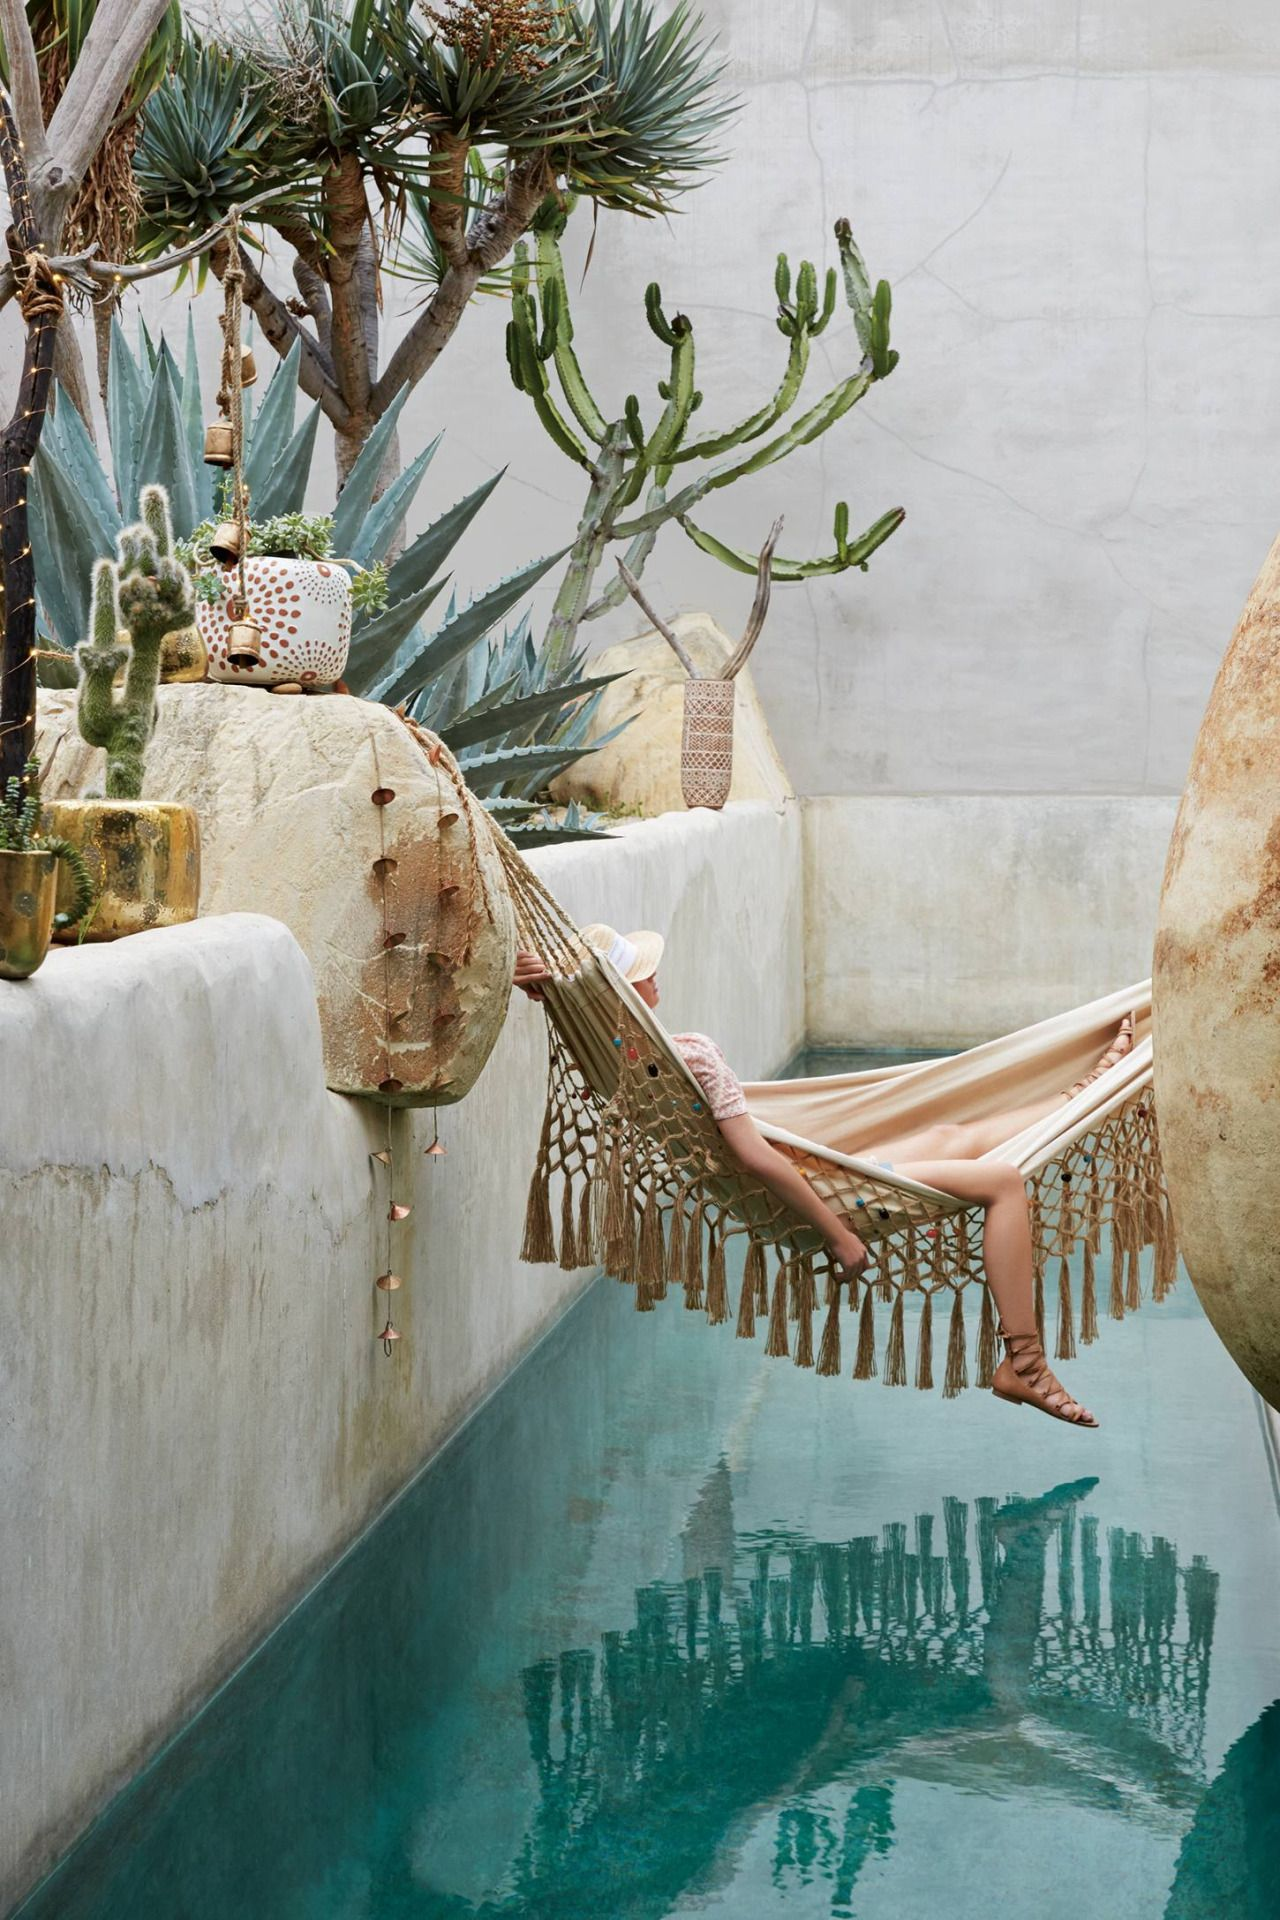 Beaded jute hammockthis beaded hammock was inspired by the art of